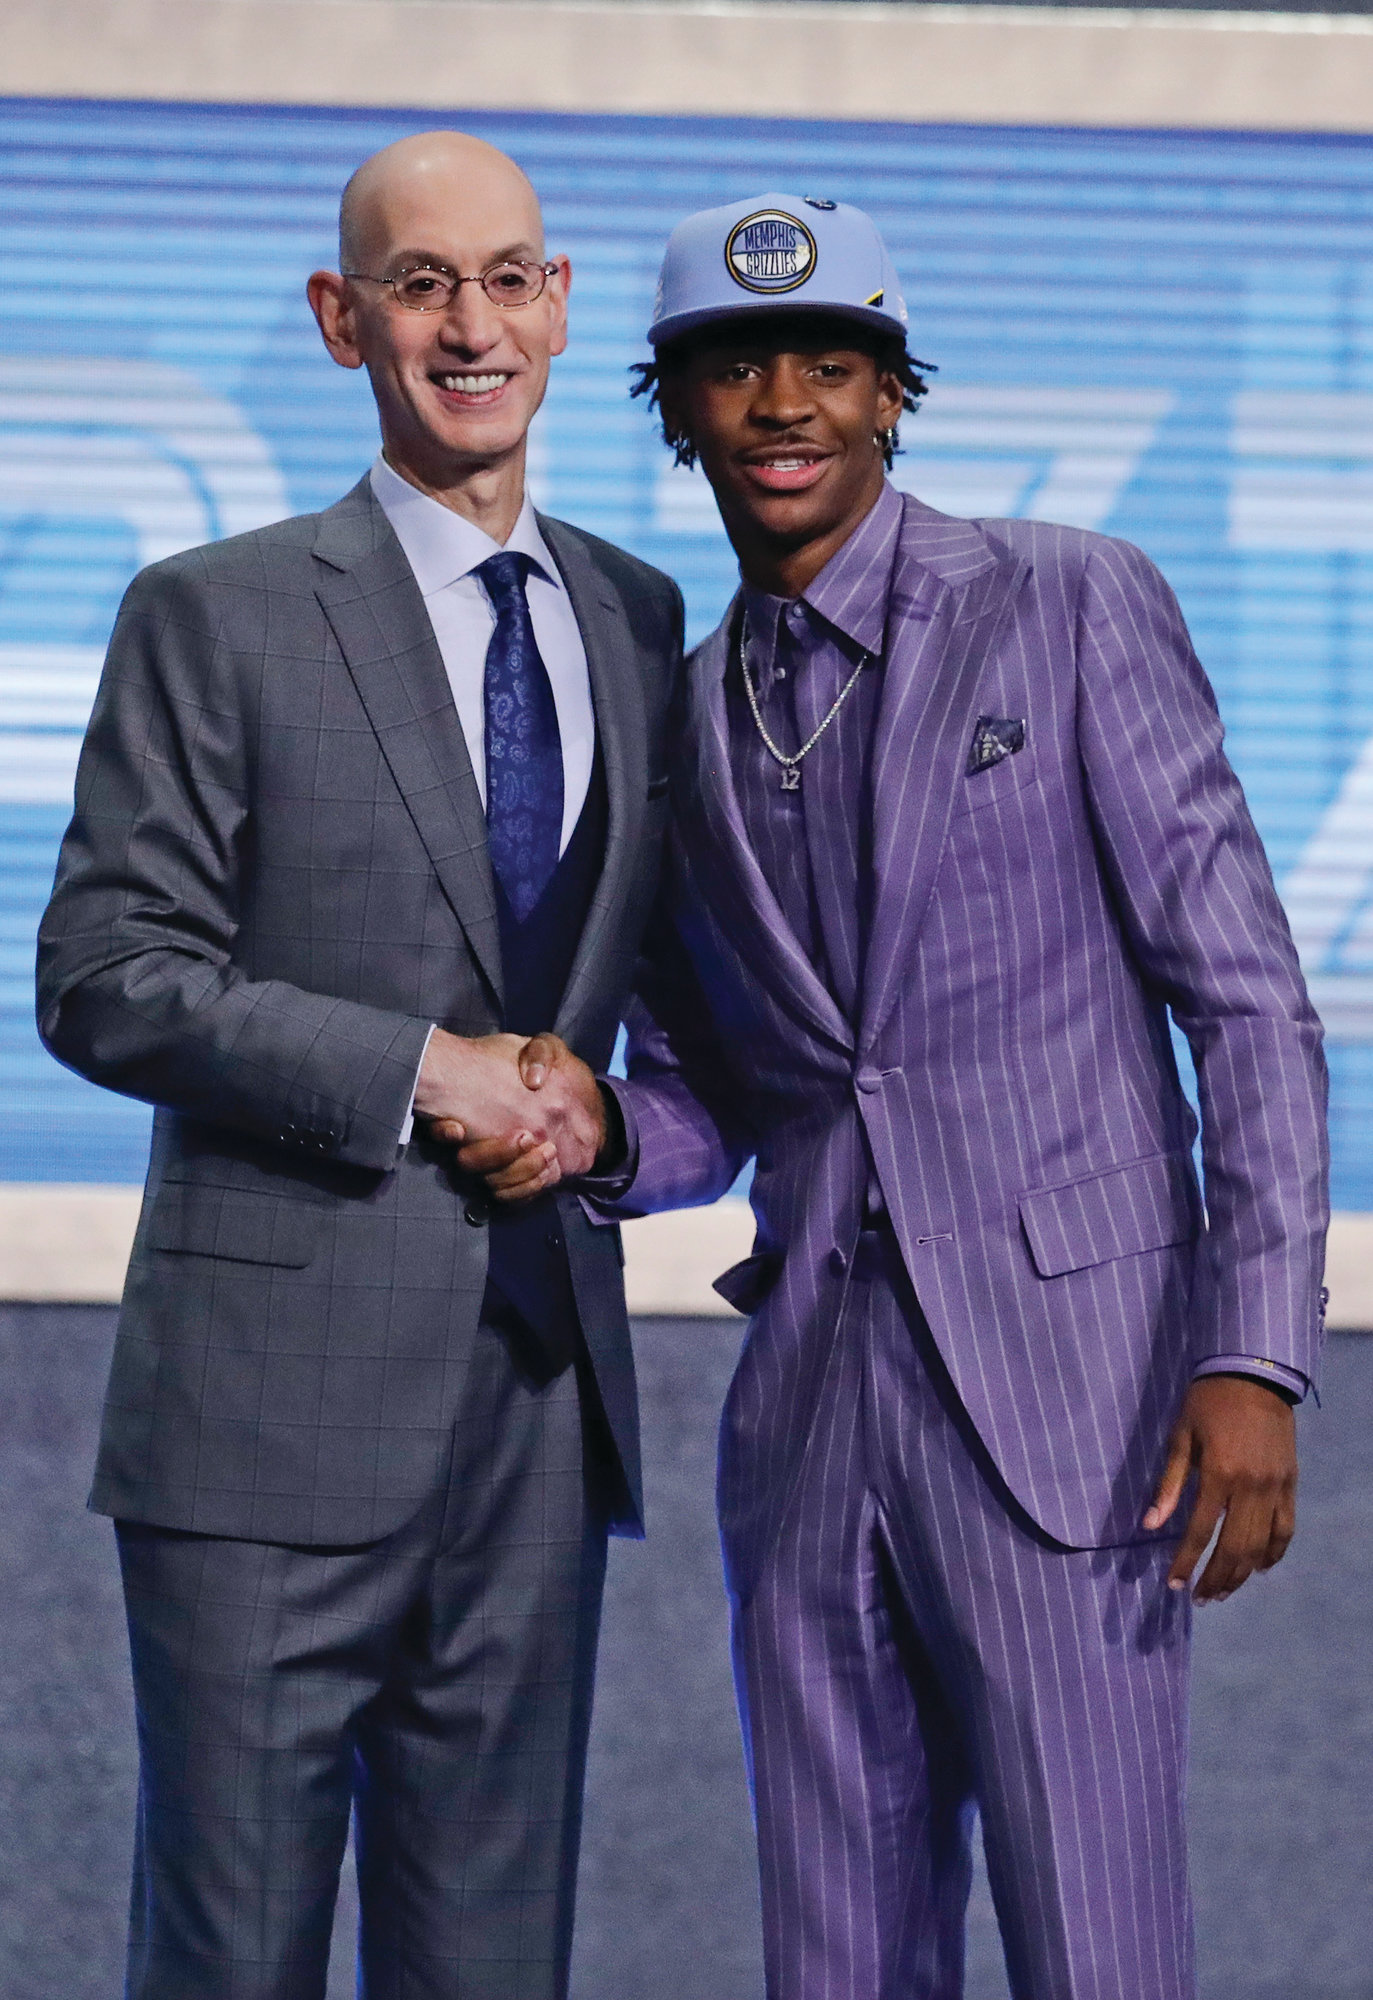 Murray State's Ja Morant, right, is  greeted by NBA Commissioner Adam  Silver after being selected by the Memphis Grizzlies with the second pick in  the NBA draft on Thursday in Brooklyn, New York.